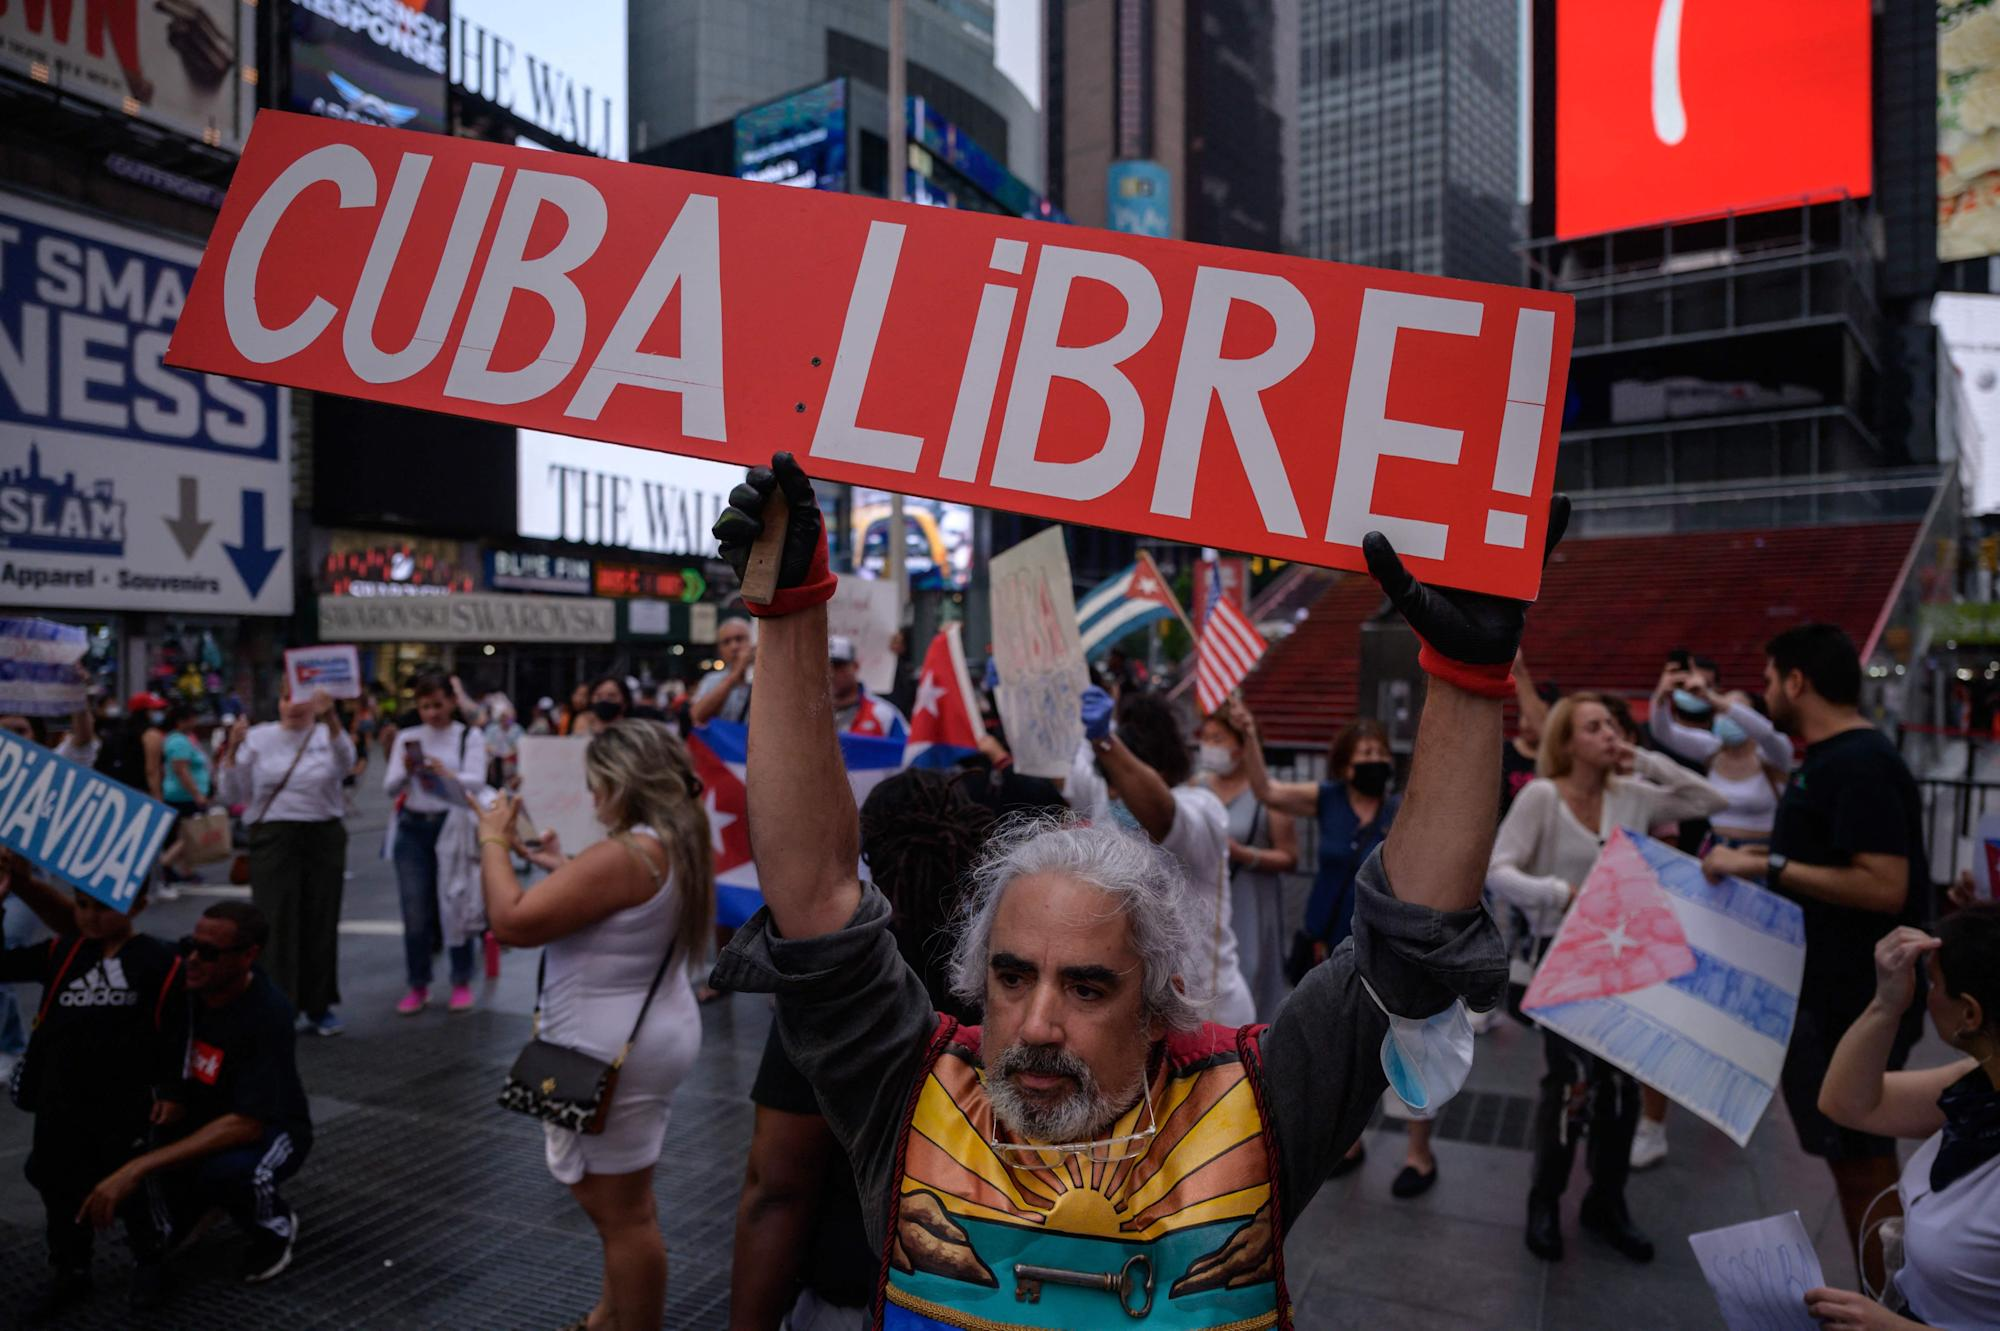 this-isn't-about-music,-it's-about-'freedom':-why-songs-chanted-at-cuba-protests-matter